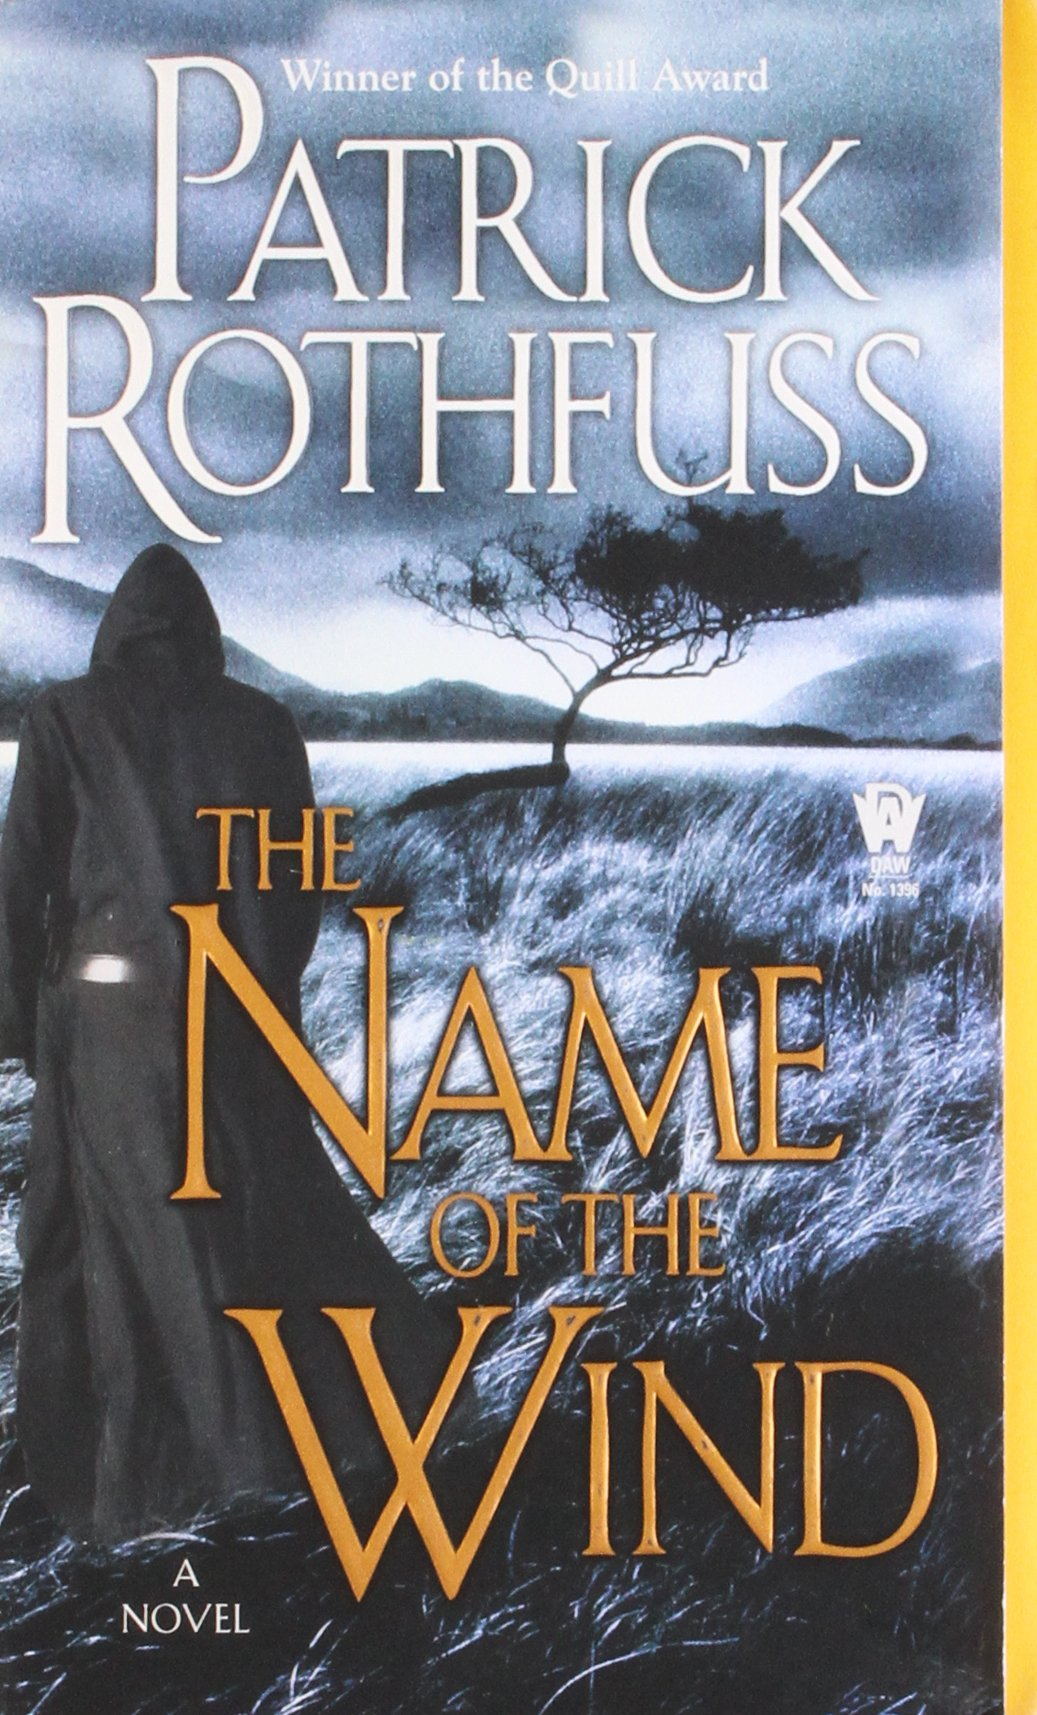 Book cover: Name of the Wind